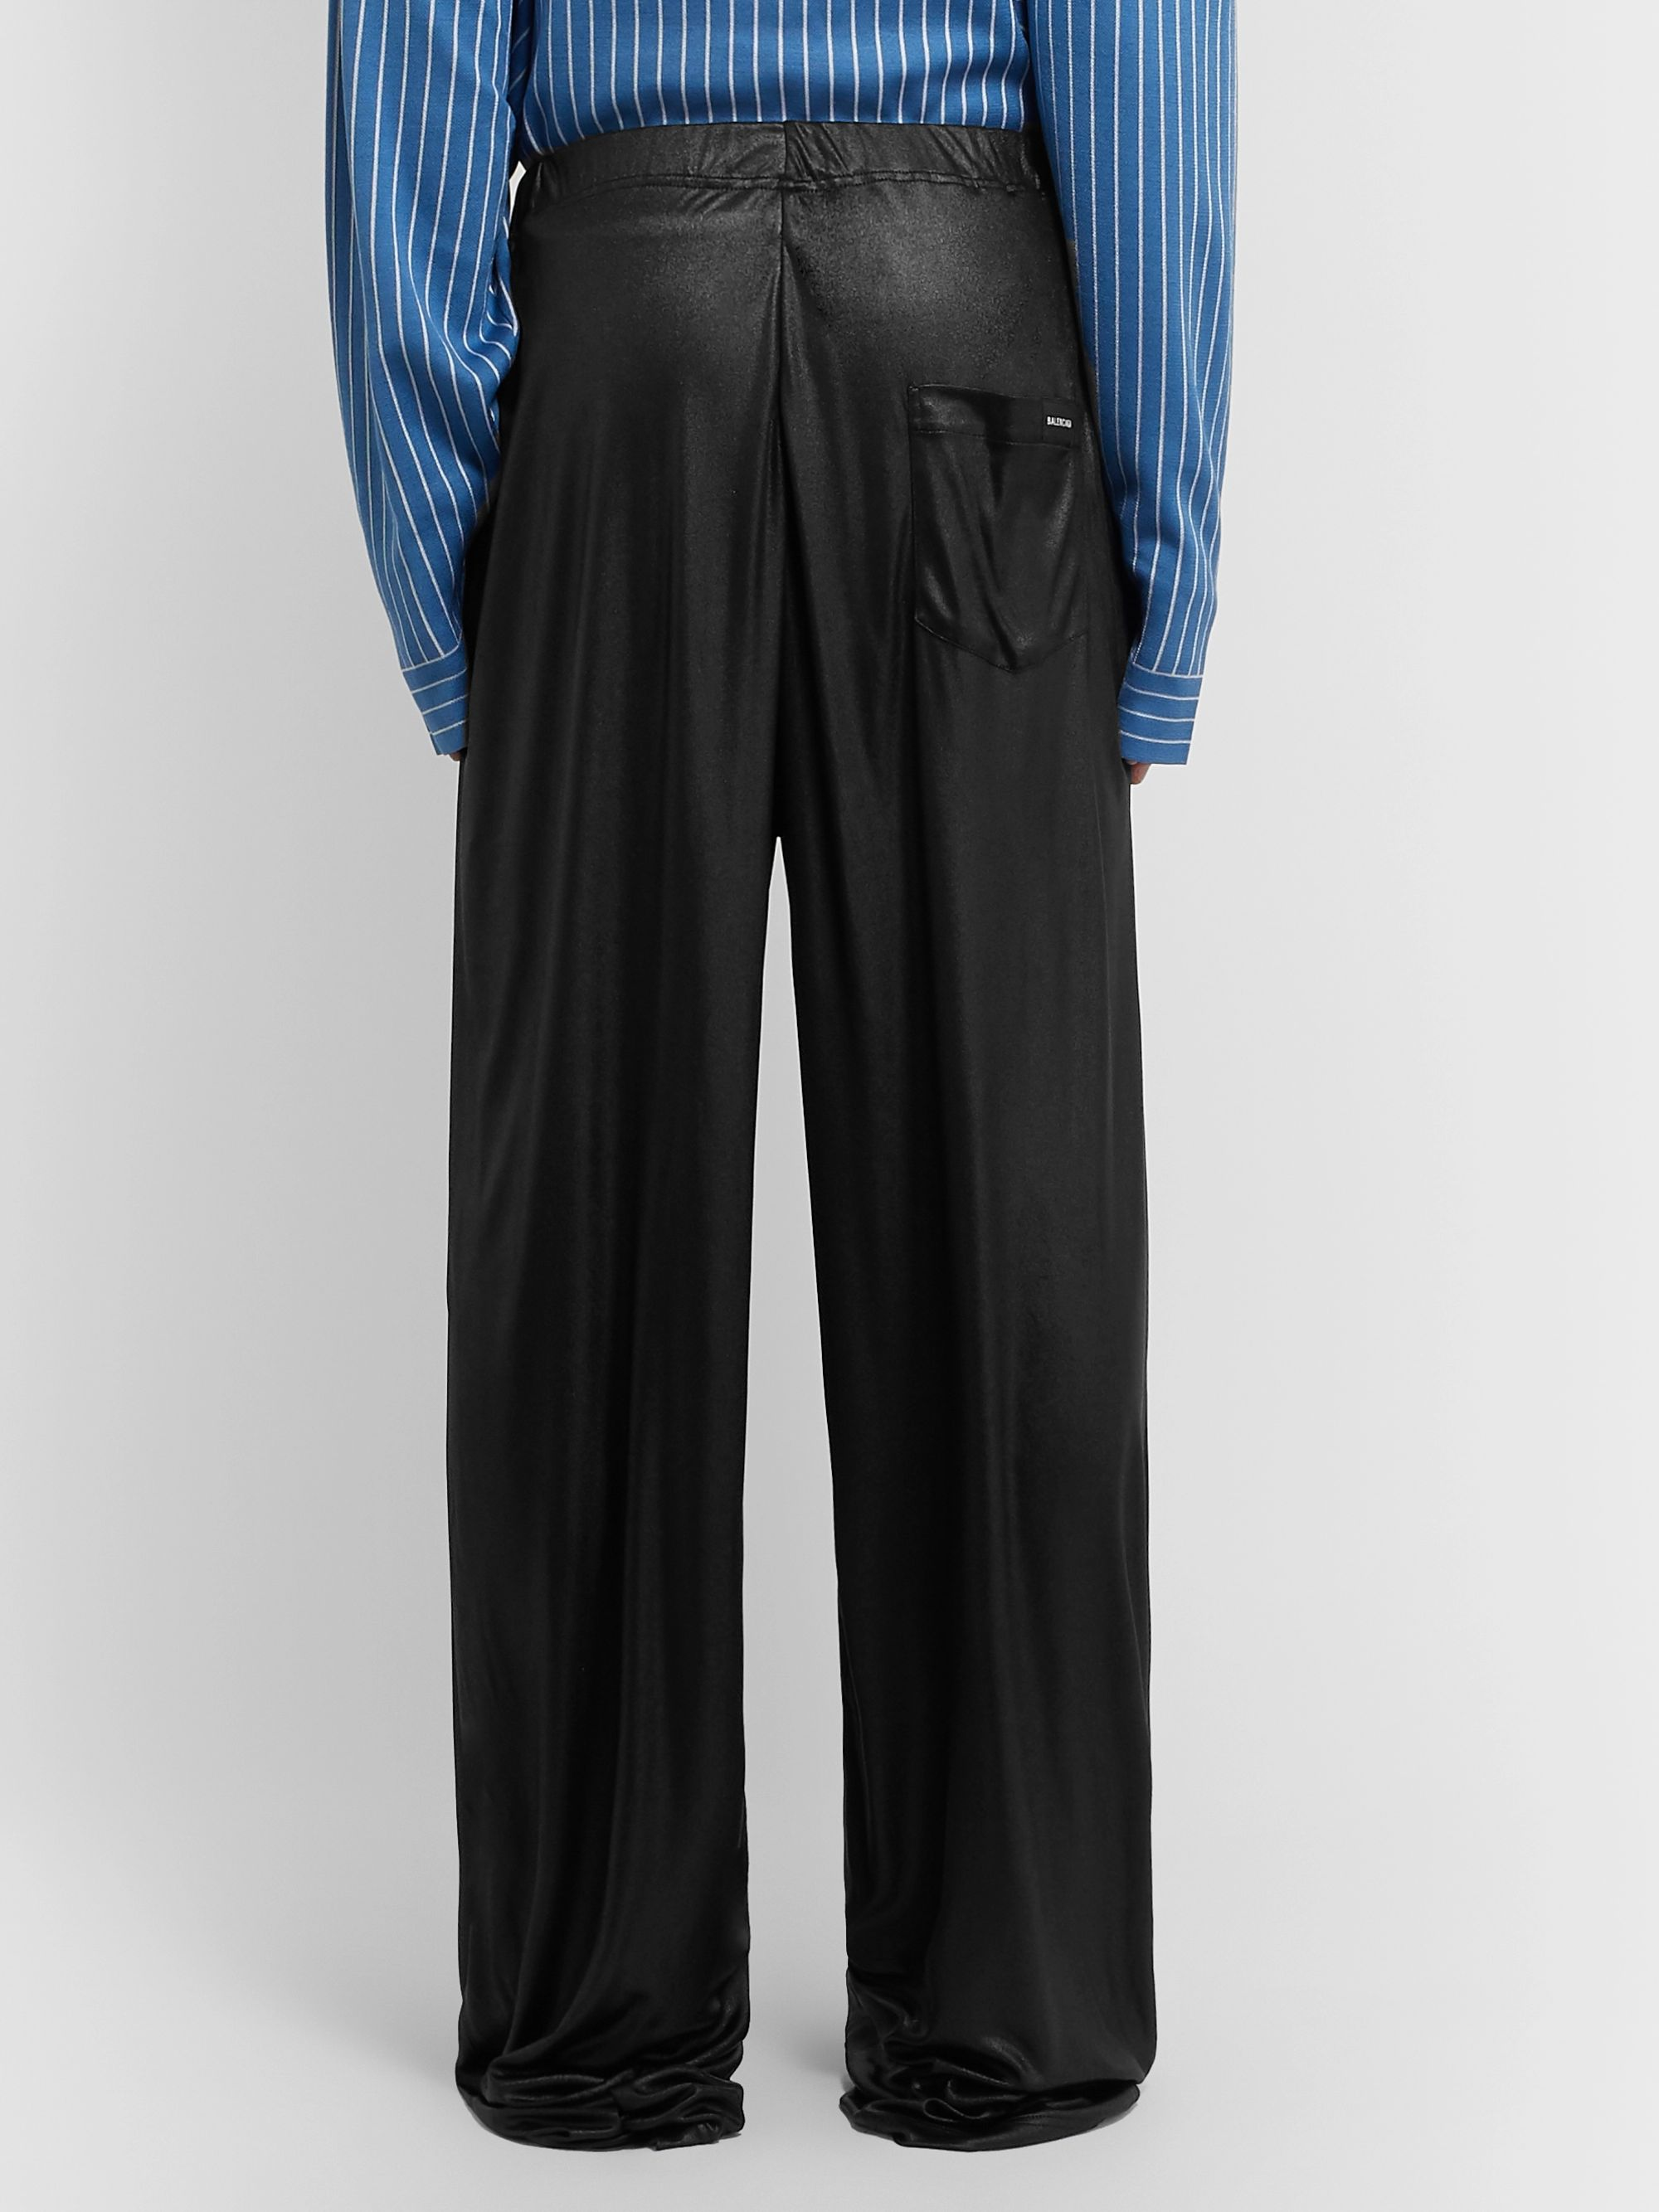 Balenciaga Black Wide-Leg Coated-Jersey Trousers